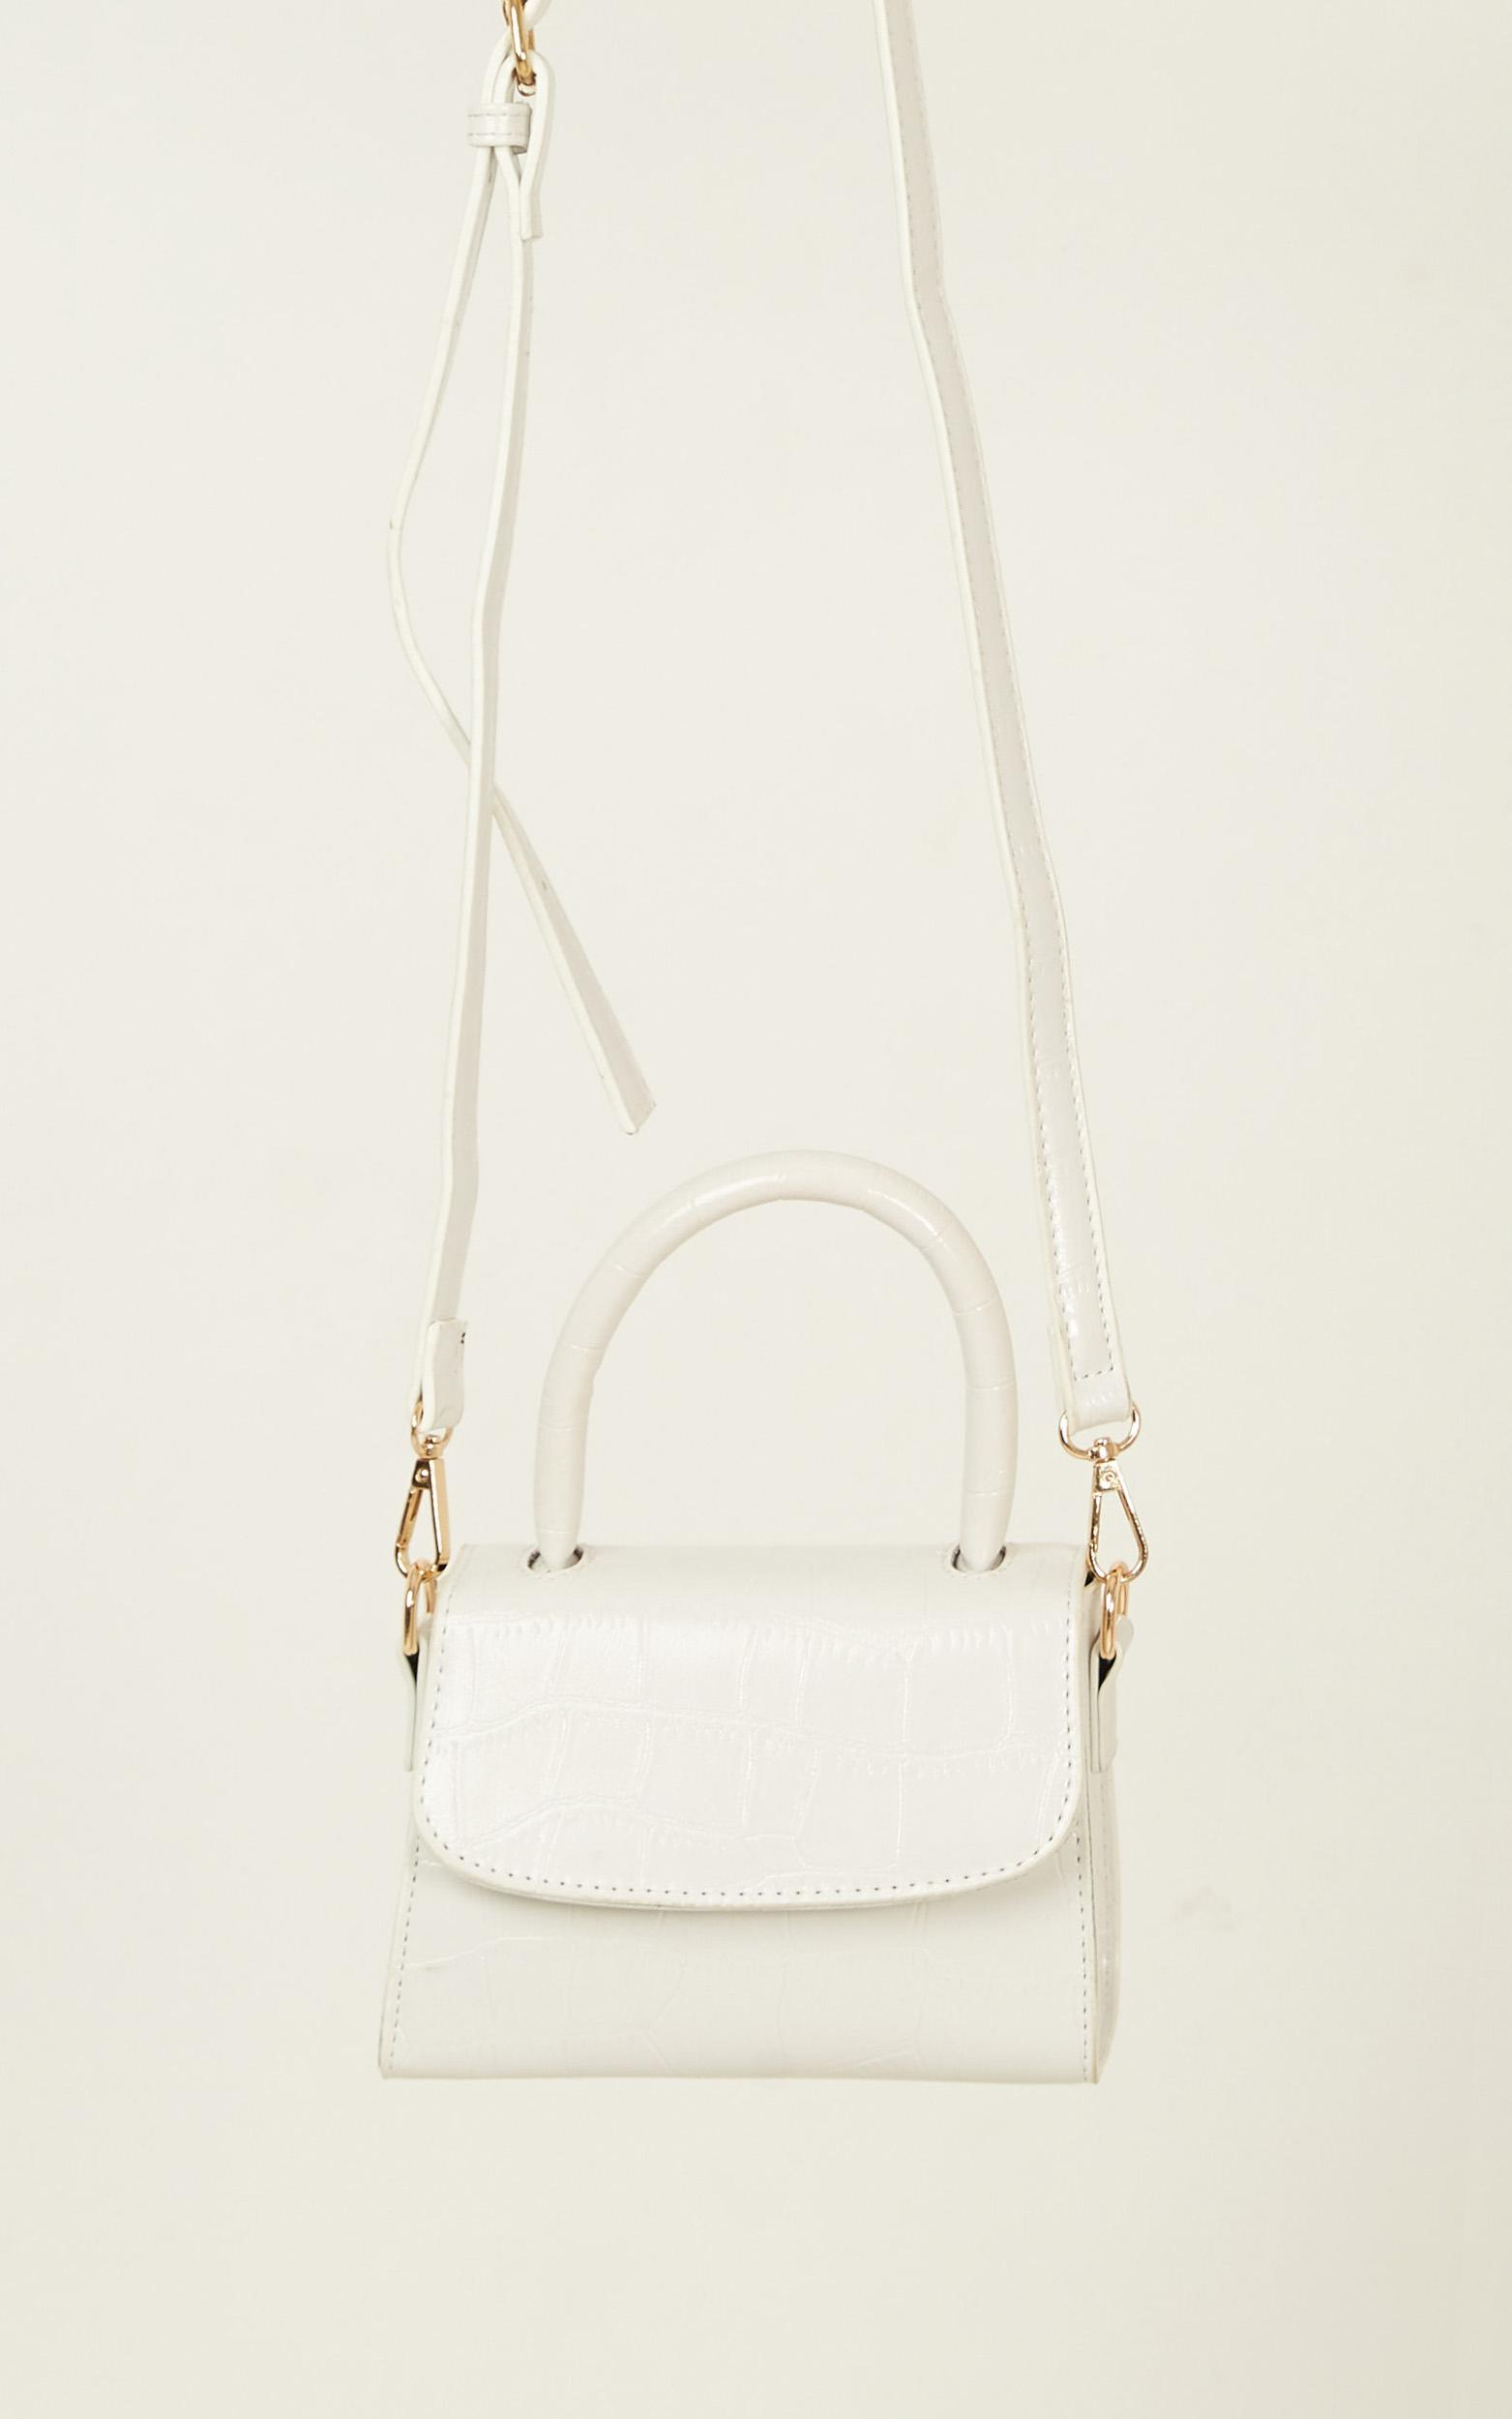 Halfway There Bag In White Croc, White, hi-res image number null